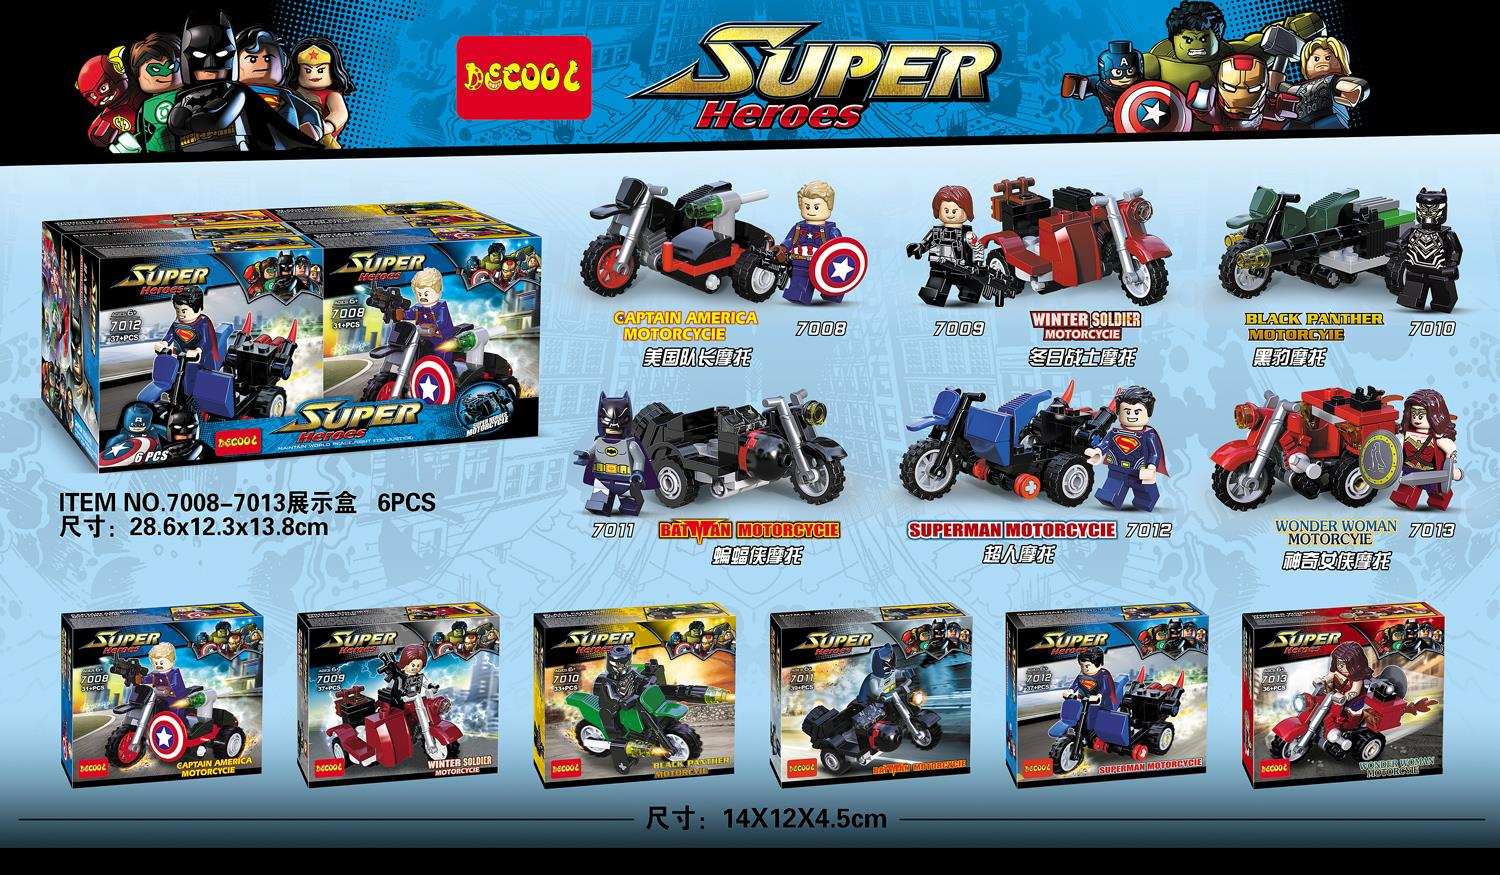 DECOOL 7008-7013 - Superheroes Motorcycle - 100% Lego Compatible